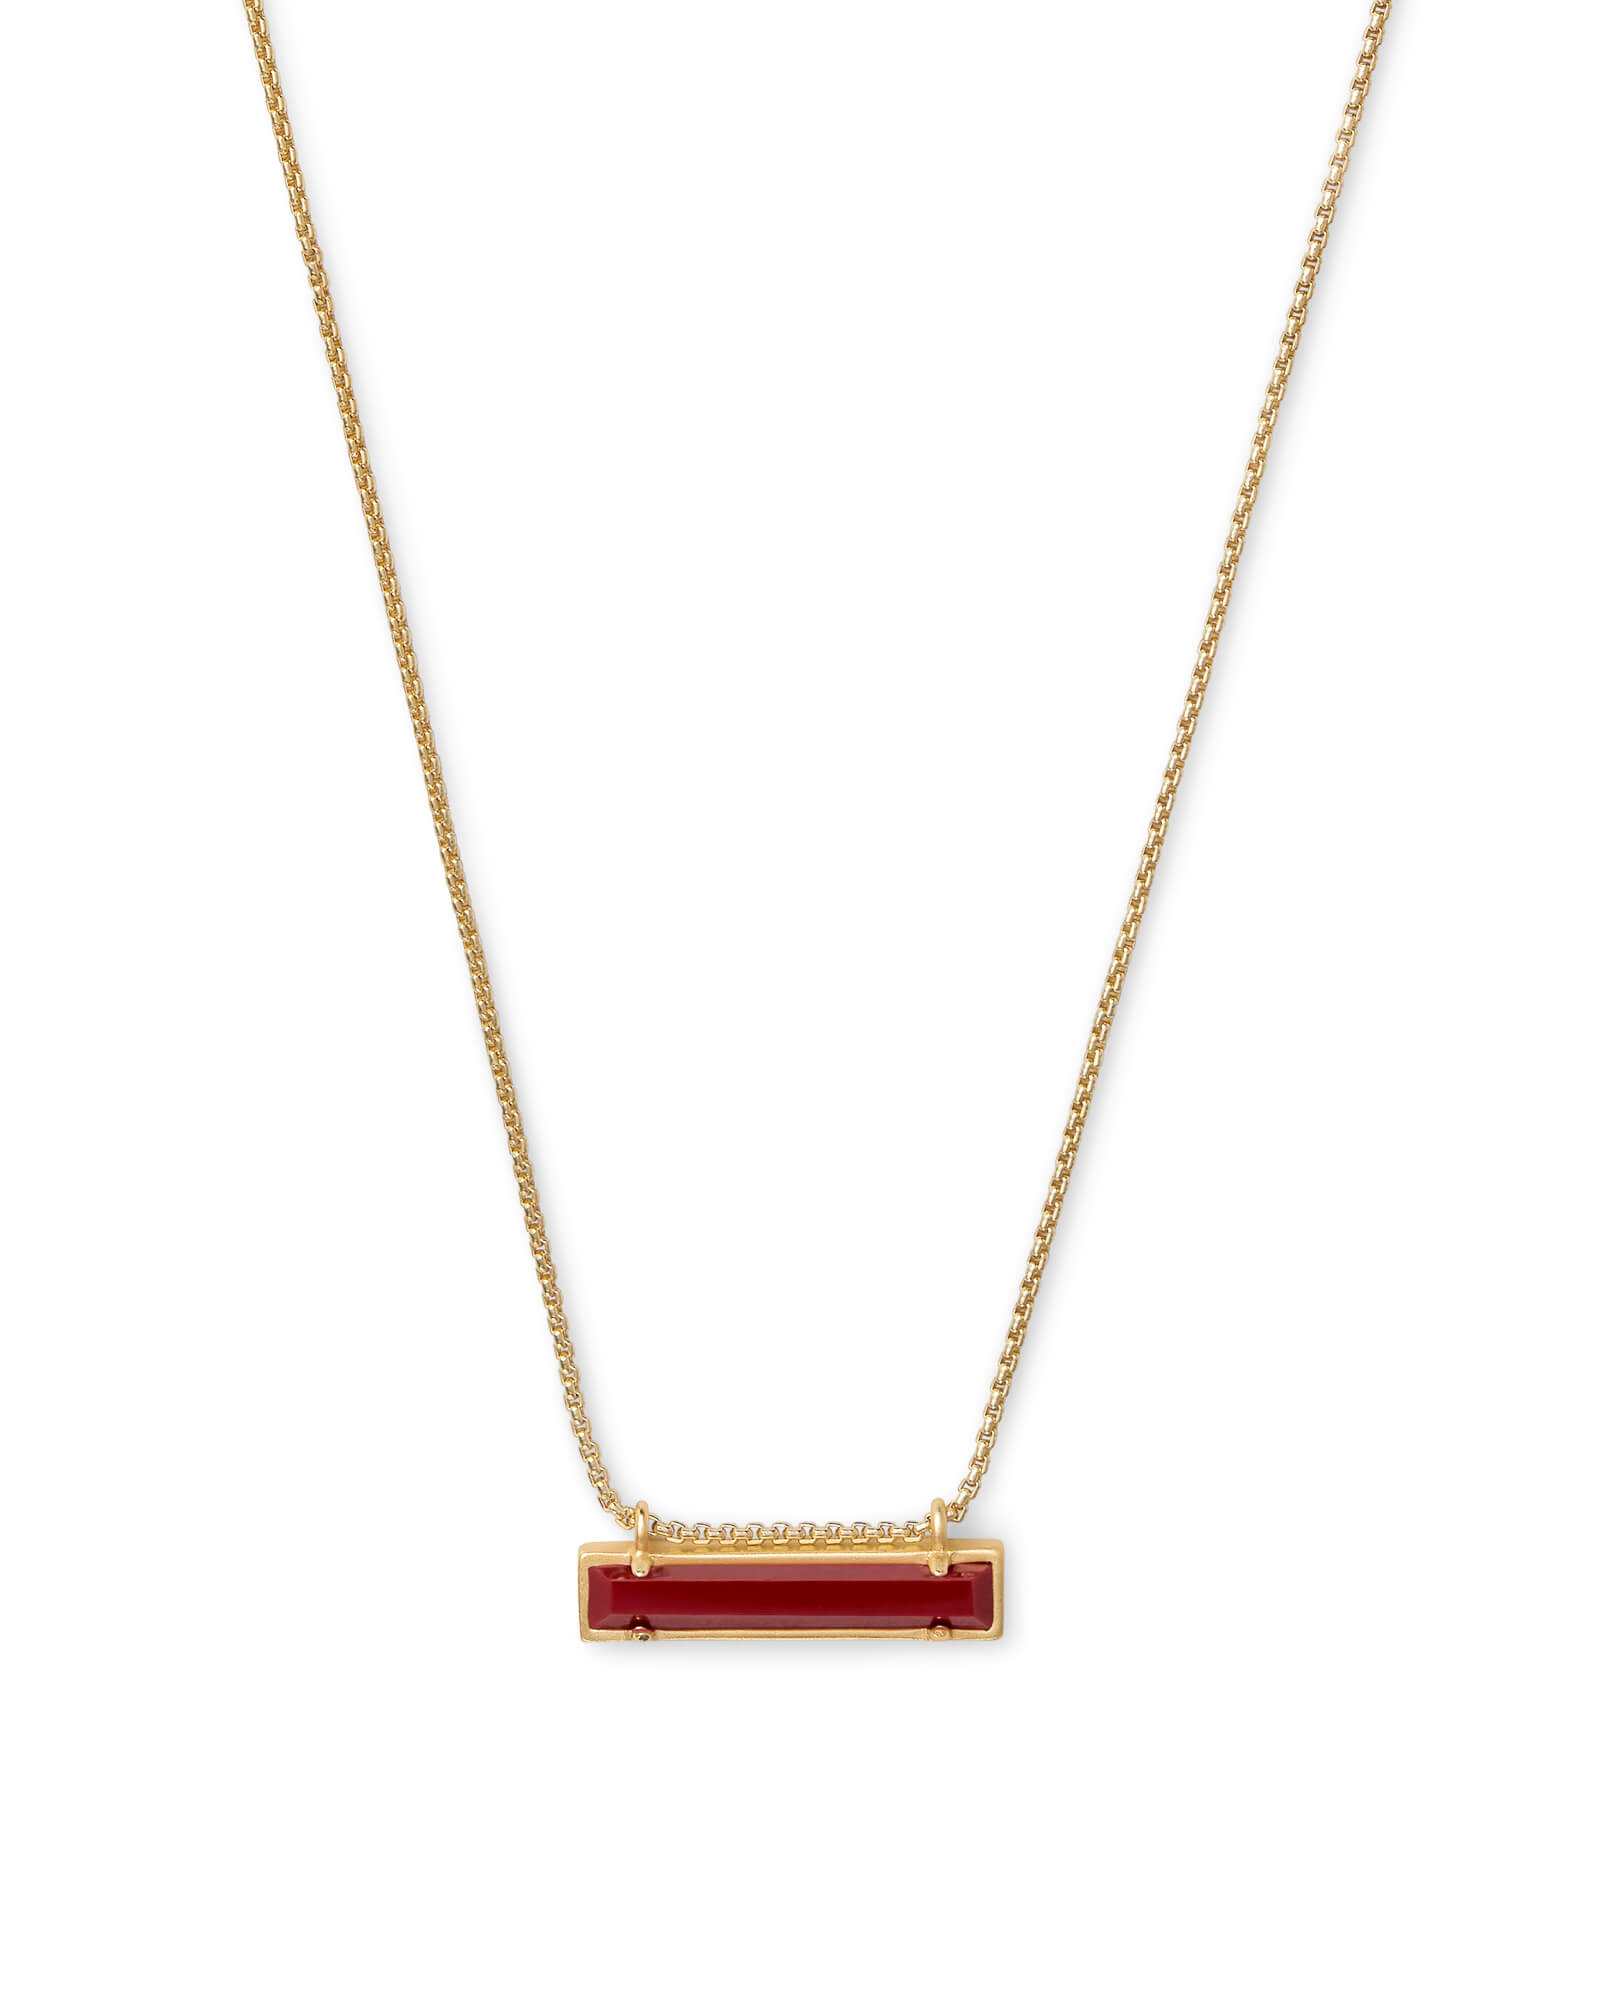 Leanor Gold Pendant Necklace In Dark Red